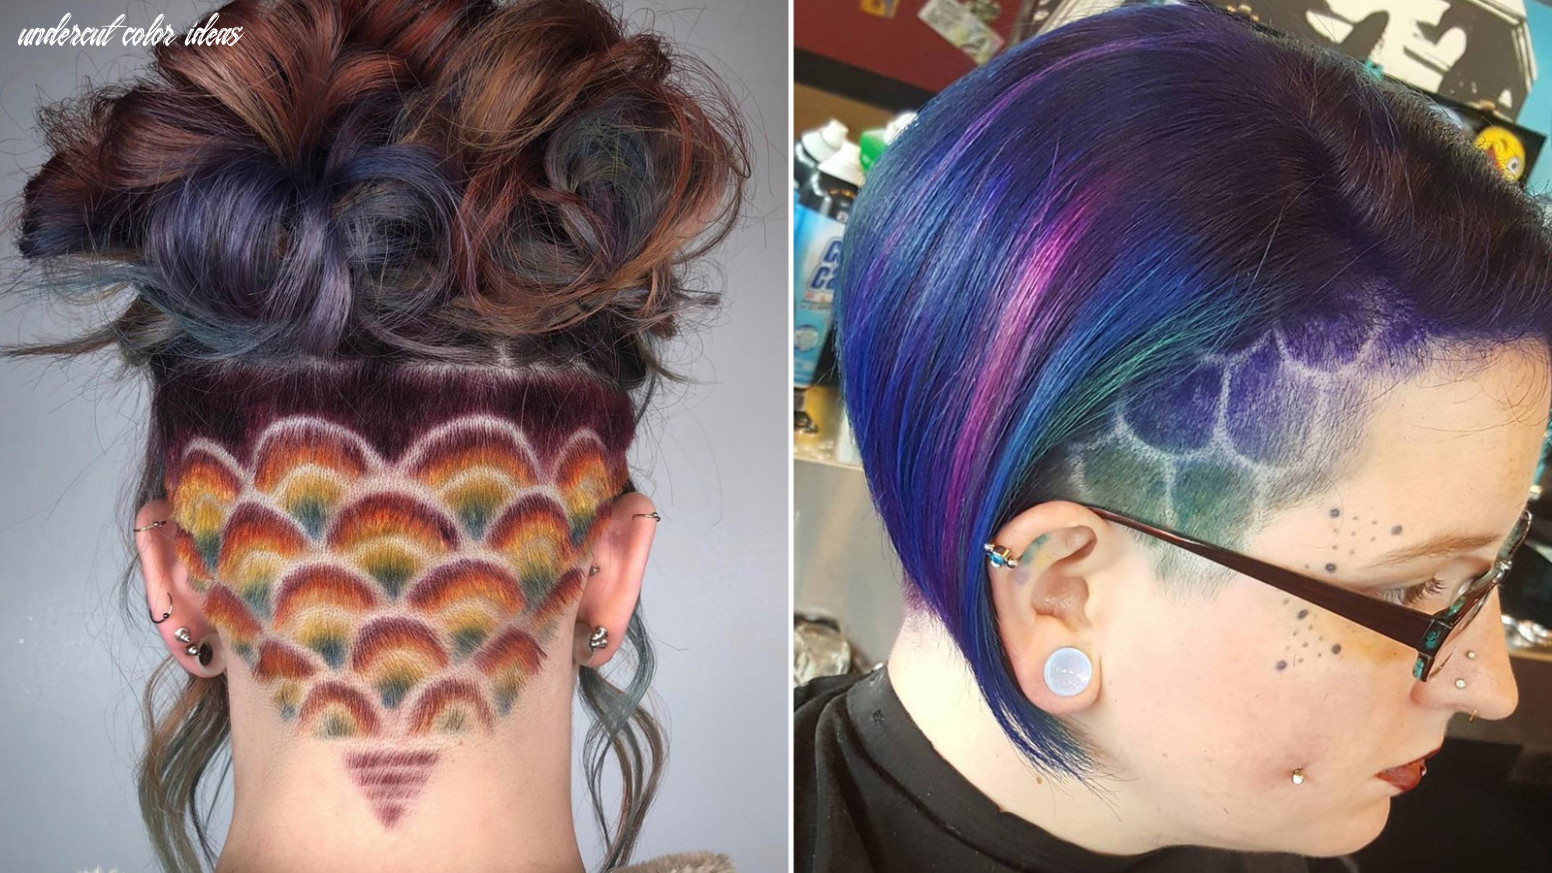 11 cool undercut hairstyle ideas undercut designs | allure undercut color ideas